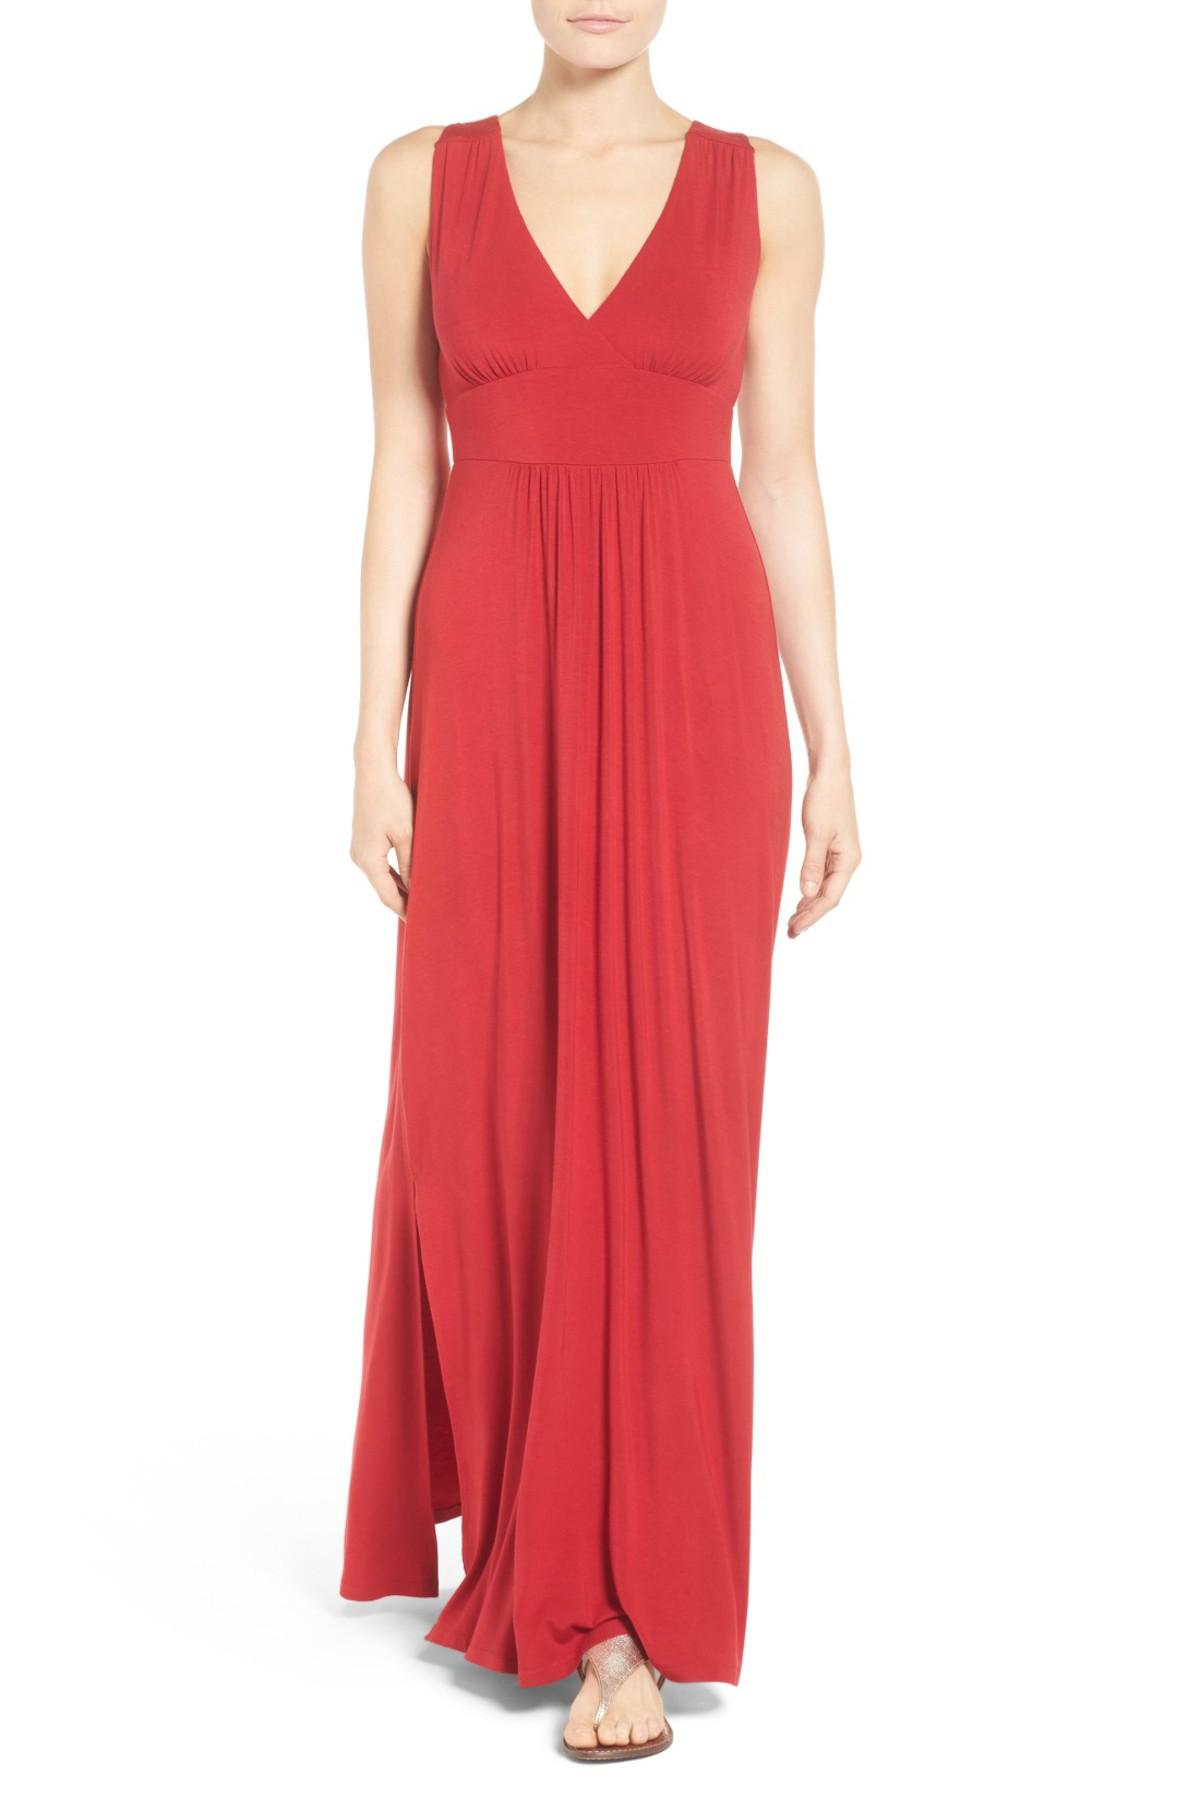 Lyst - Caslon (r) Knit Maxi Dress (regular & Petite) in Red - Save ...